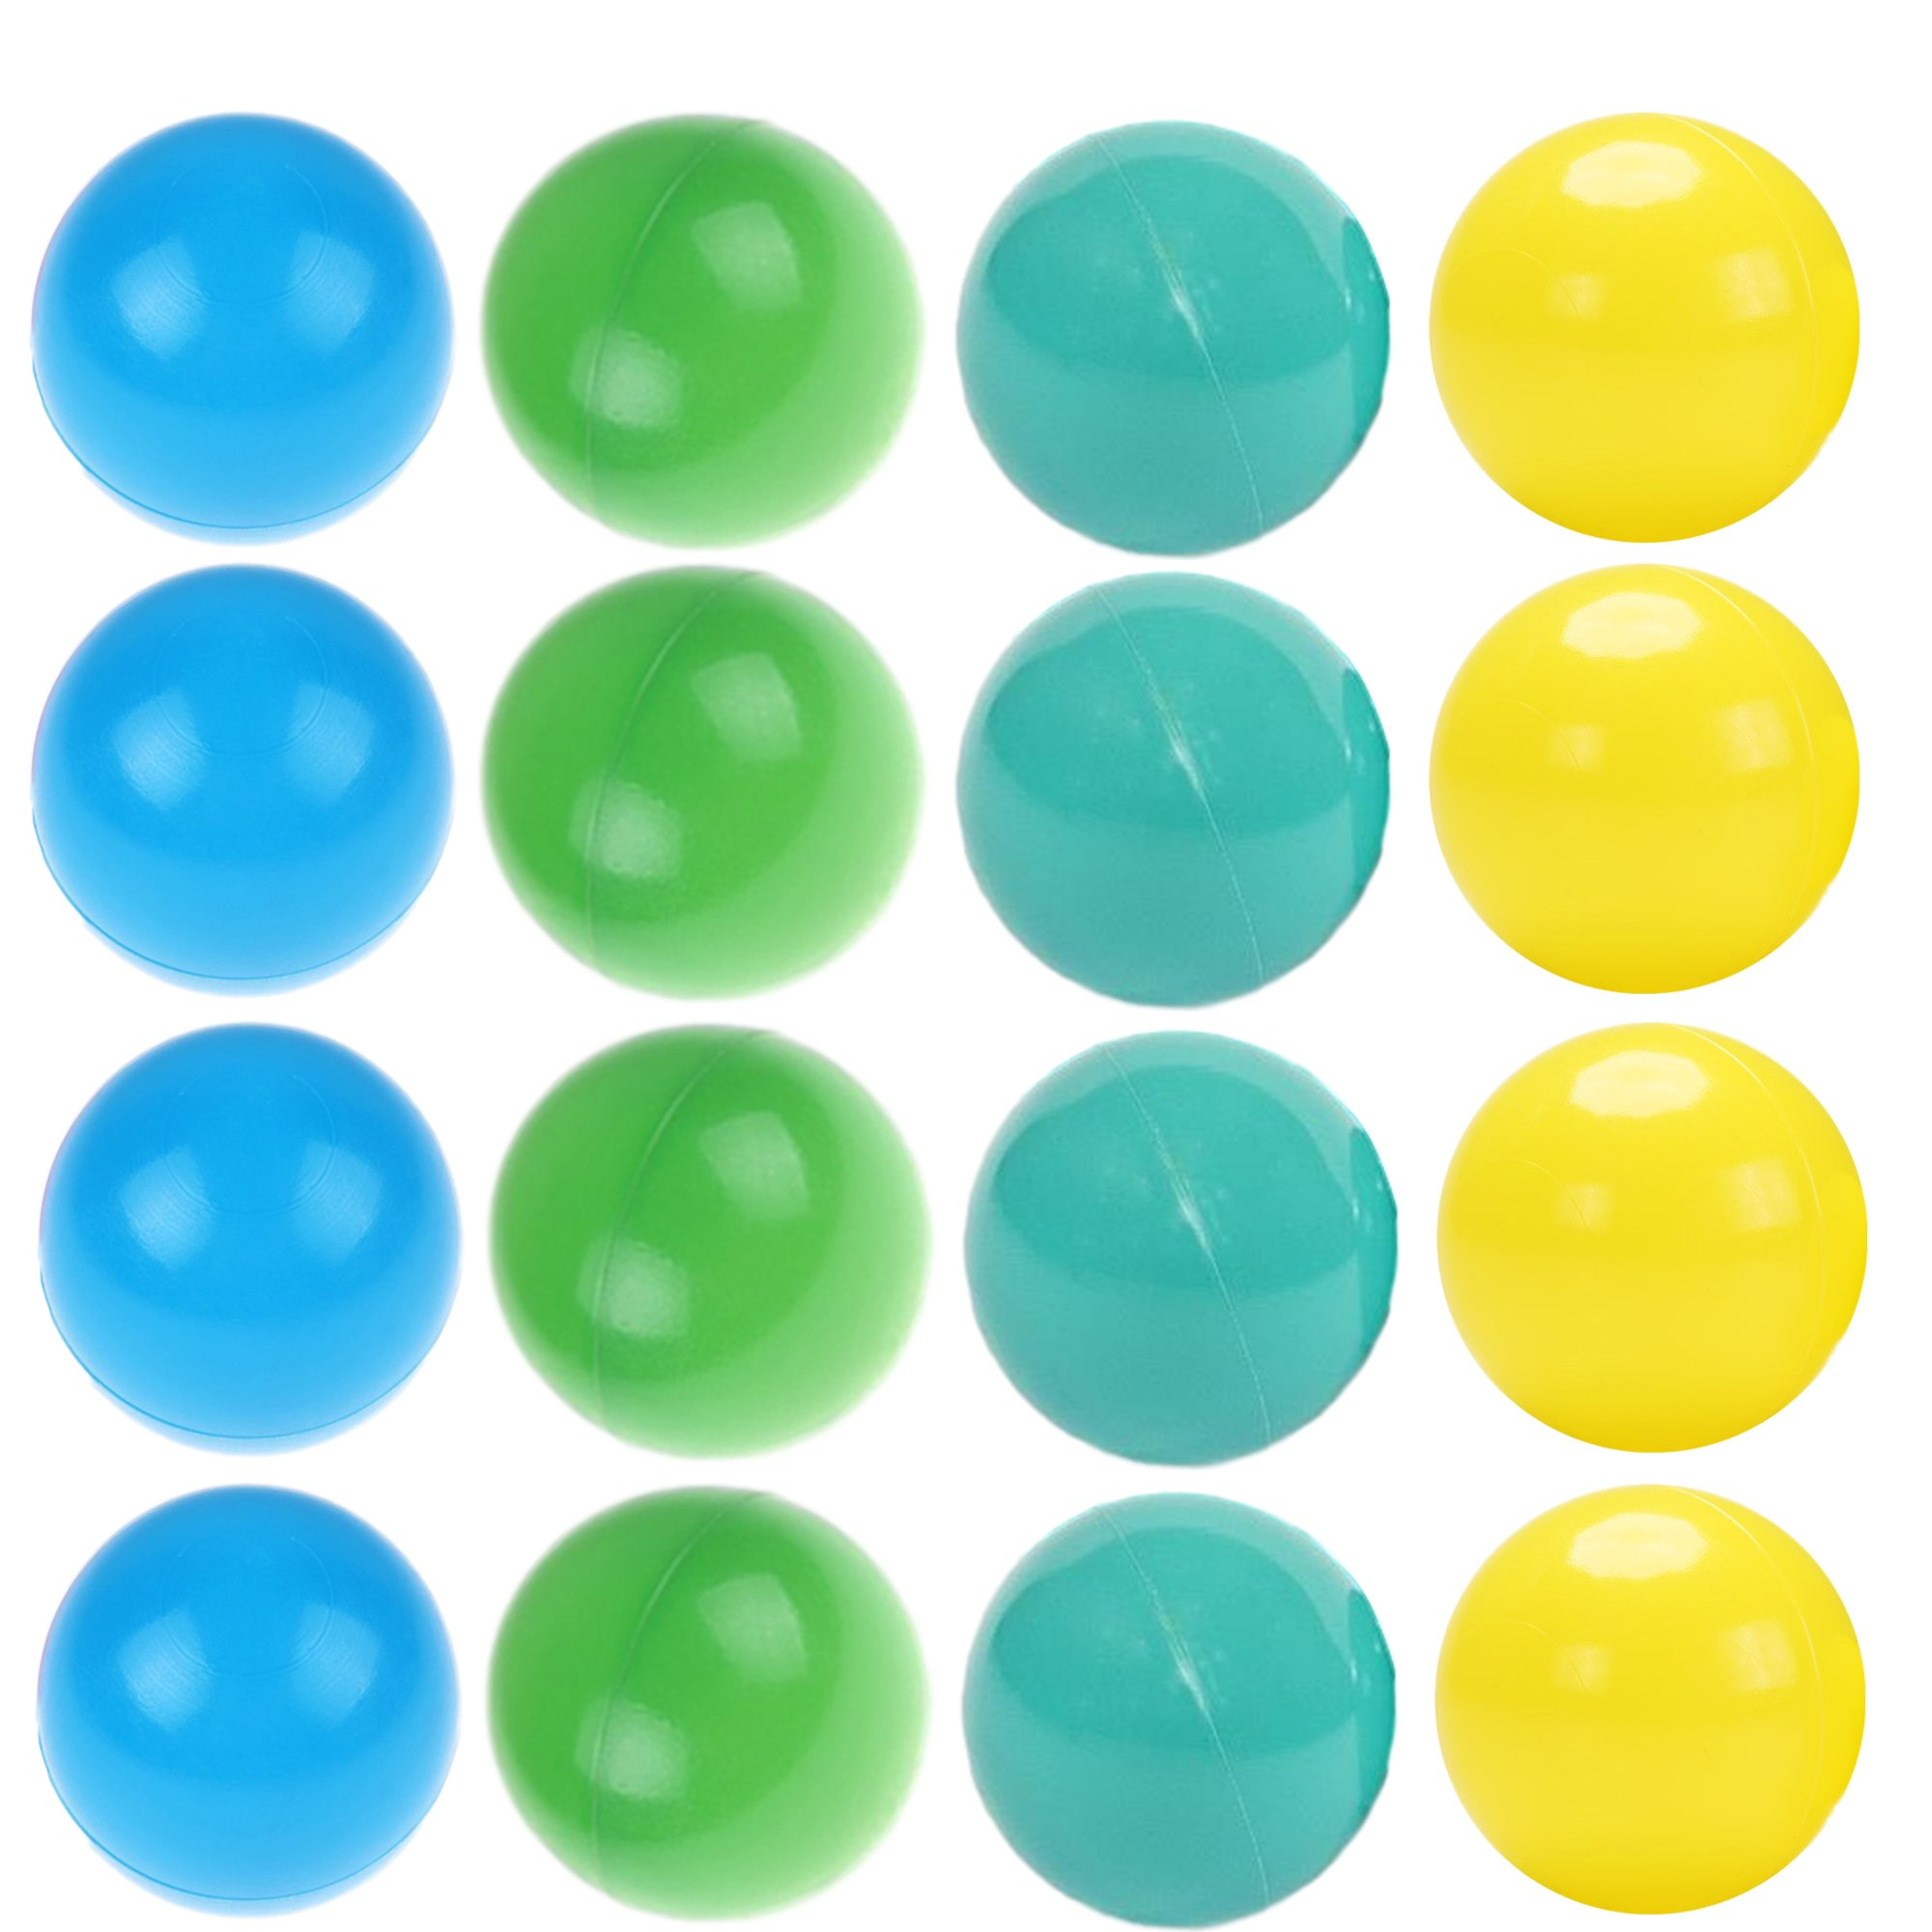 Playz 200 Special Edition Soft Plastic Play Balls - Crush Proof, No Sharp Edges, Non Toxic, Phthalate & BPA Free - Use in Baby or Toddler Ball Pit, Play Tents & Tunnels for Indoor & Outdoor